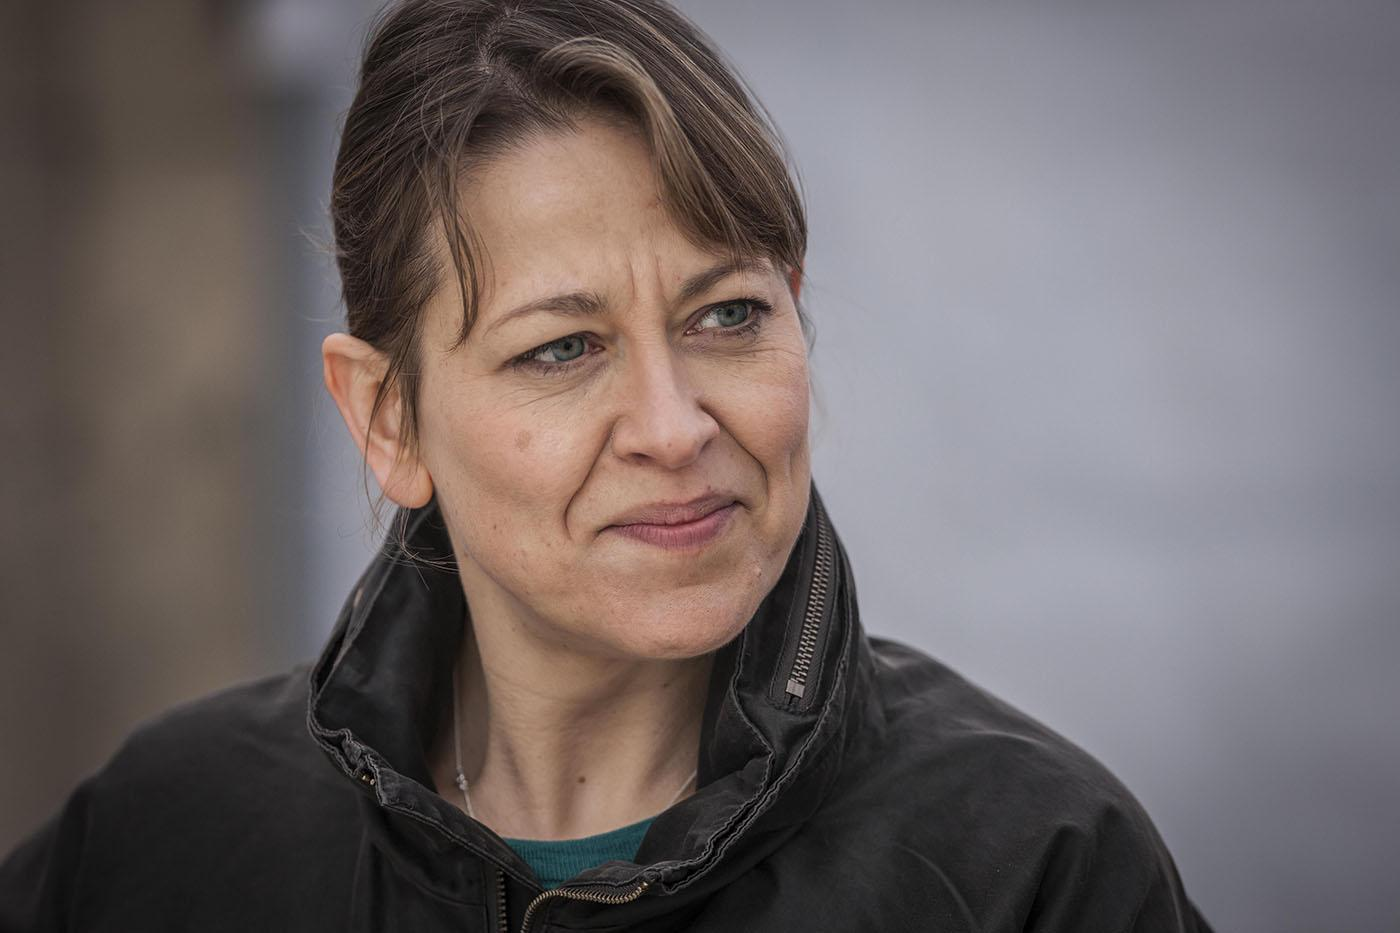 Nicola Walker as DCI Cassie Stuart. Photo: John Rogers/Mainstreet Pictures